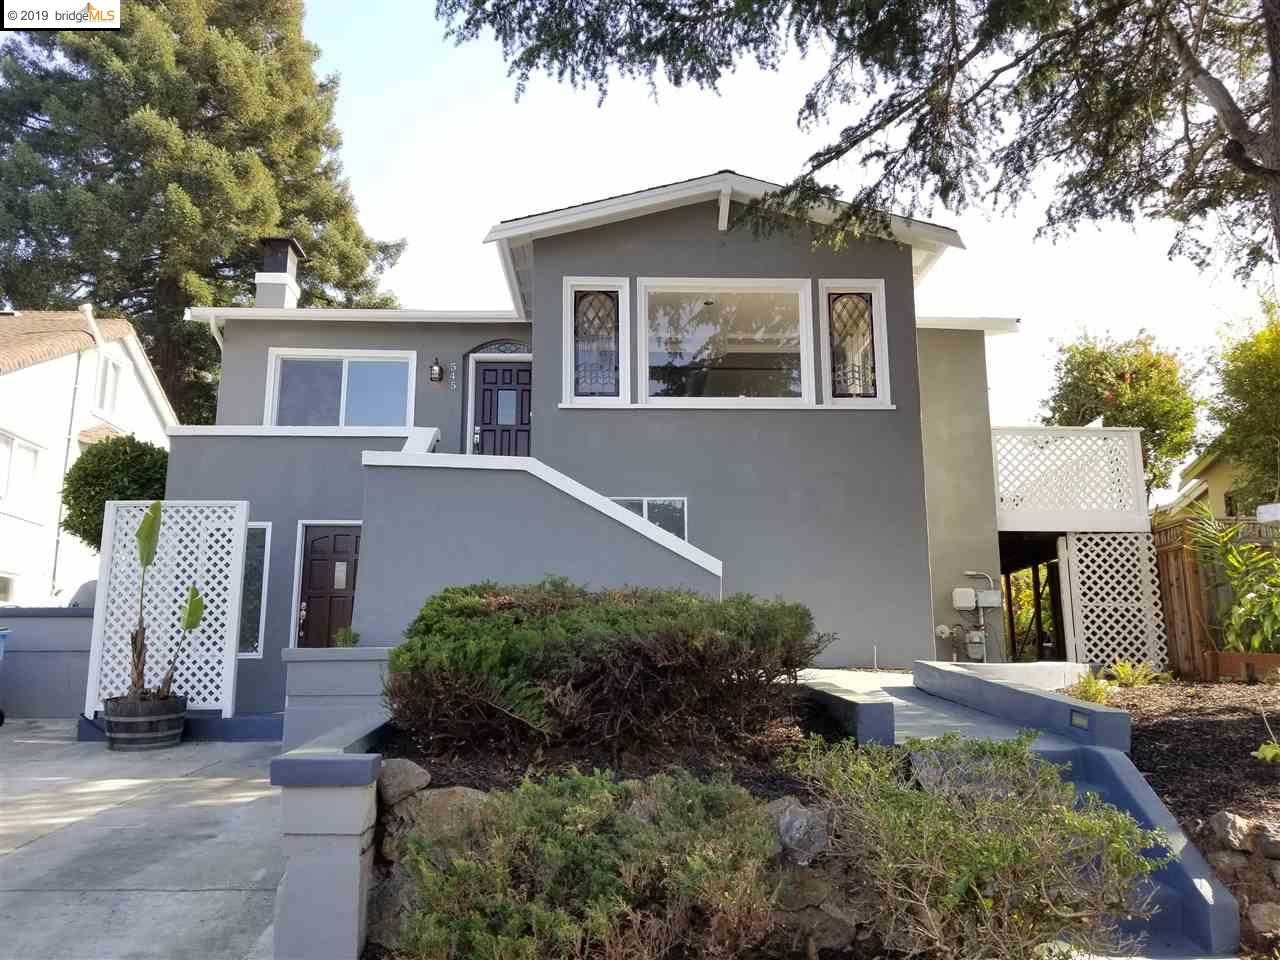 $1,199,000 - 3Br/3Ba -  for Sale in Berkeley Hills, Berkeley